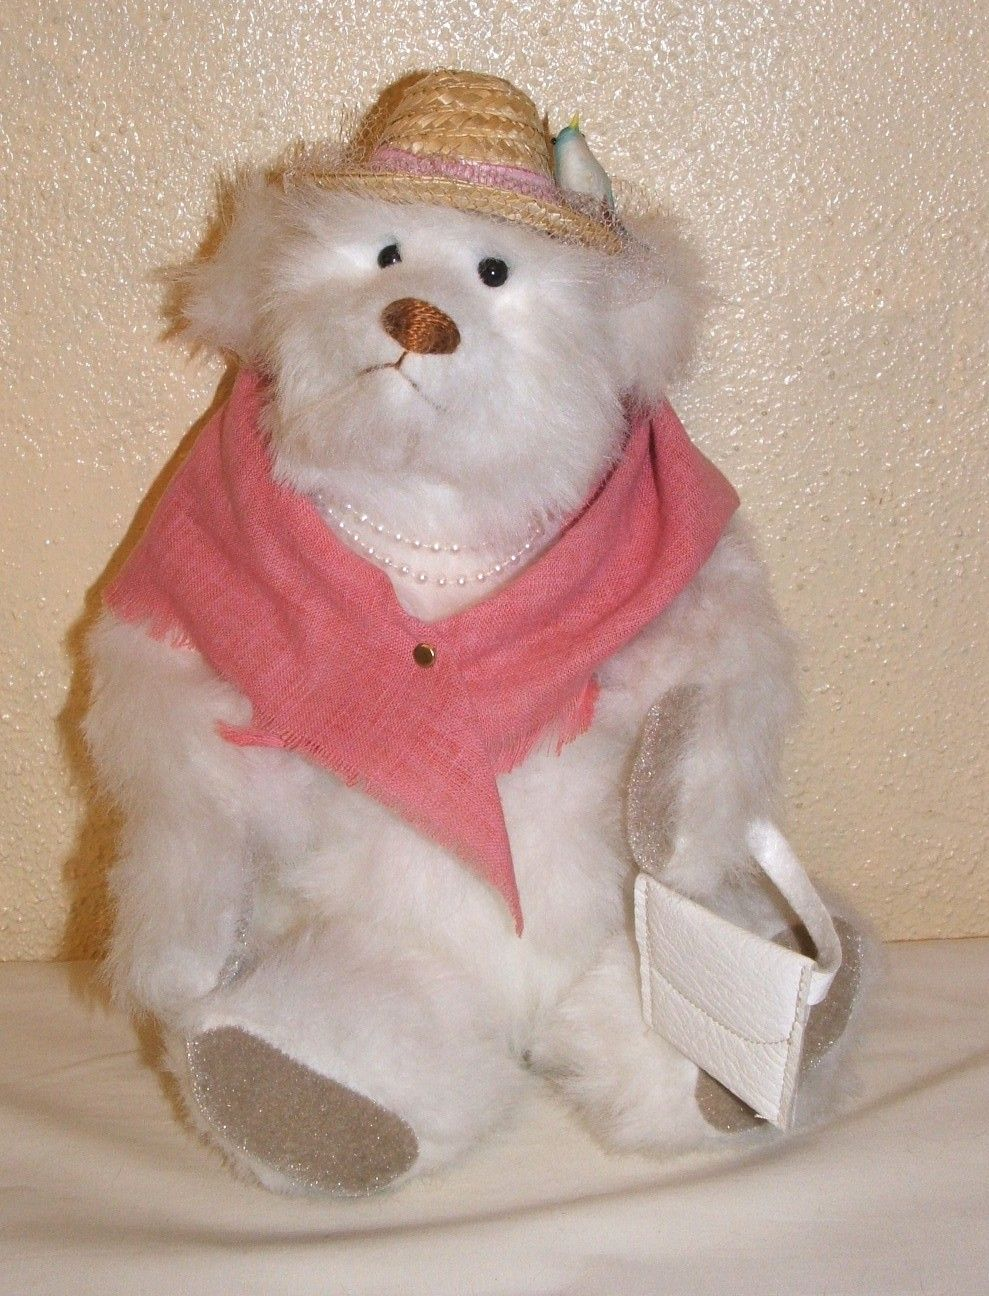 Aunt Martha - Bearly There - really reminds me of my late Aunt Martha